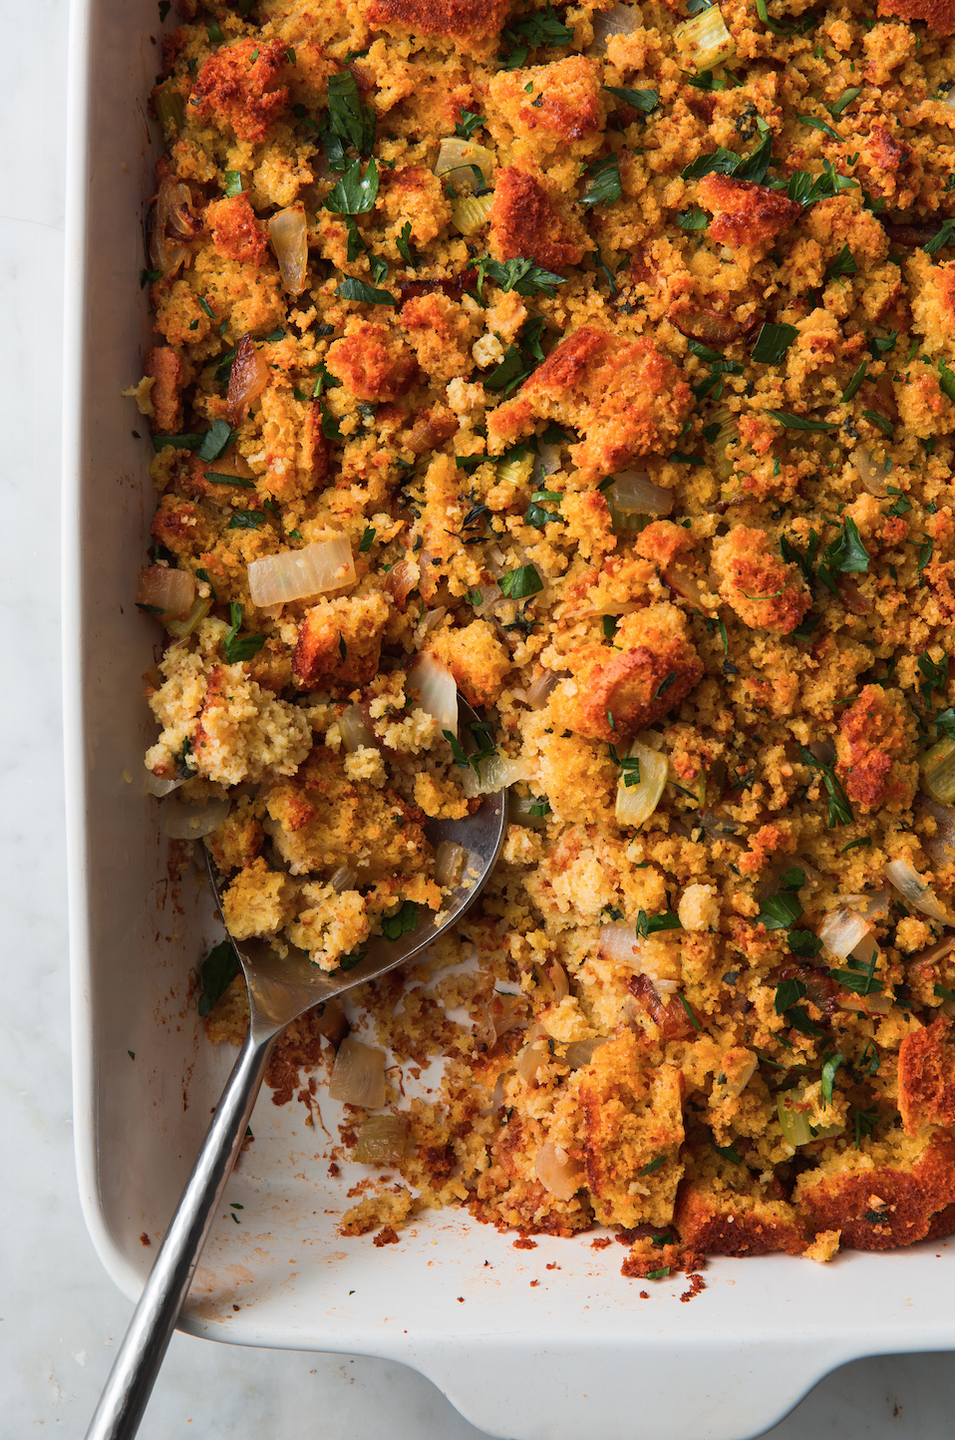 """<p>Make the cornbread the night before to make things easier!</p><p>Get the recipe from <a href=""""https://www.delish.com/cooking/recipe-ideas/a22553283/best-cornbread-stuffing-recipe/"""" rel=""""nofollow noopener"""" target=""""_blank"""" data-ylk=""""slk:Delish"""" class=""""link rapid-noclick-resp"""">Delish</a>. </p>"""